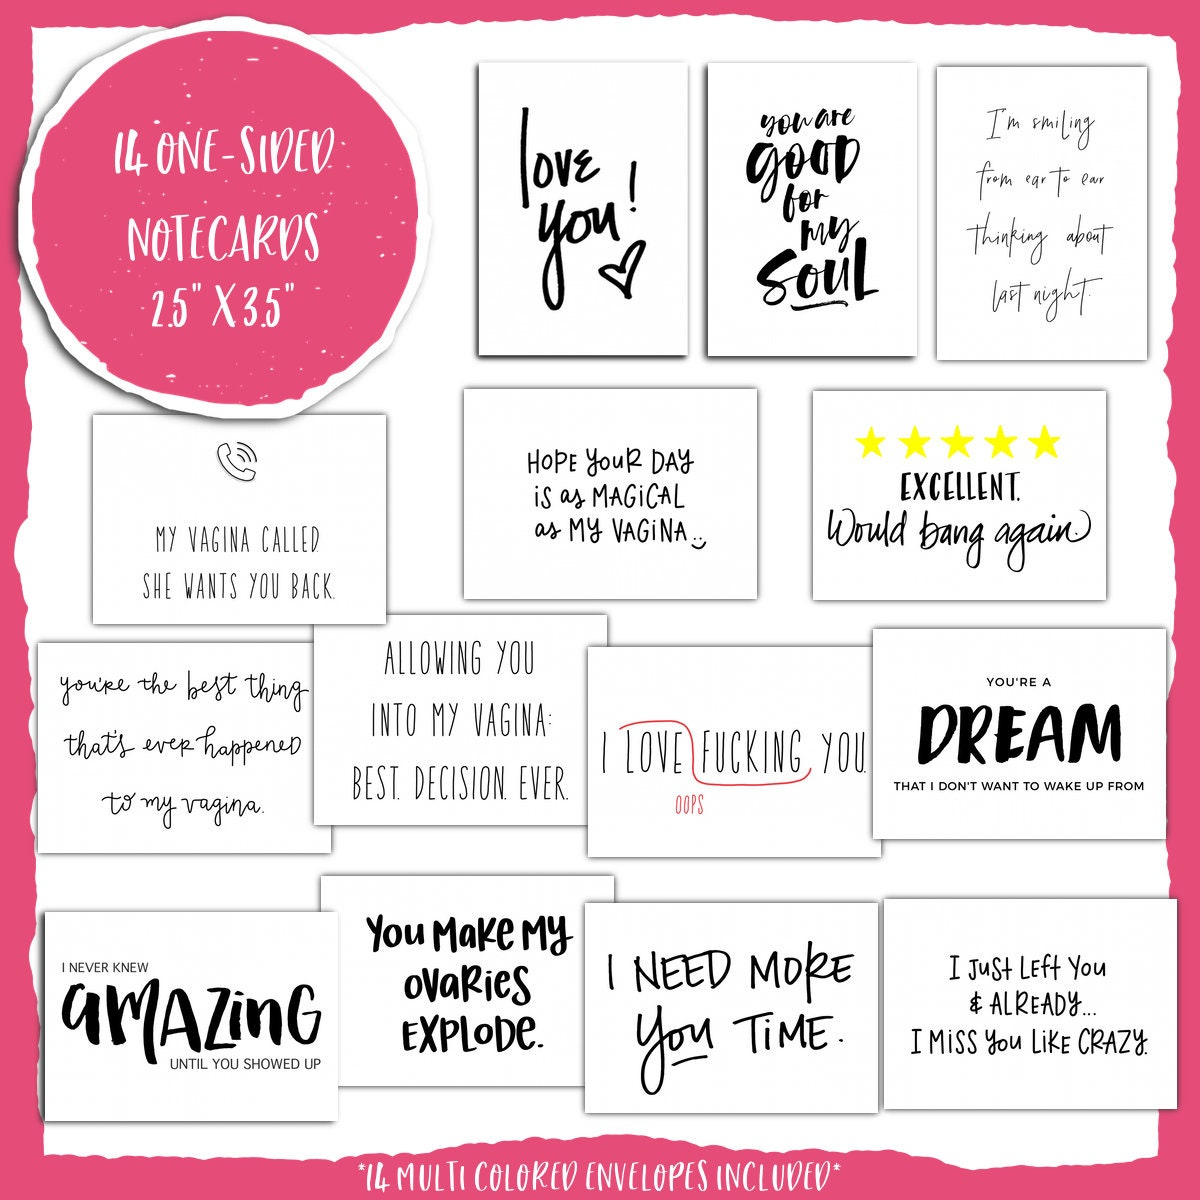 Notes for love him sexy 101 Romantic